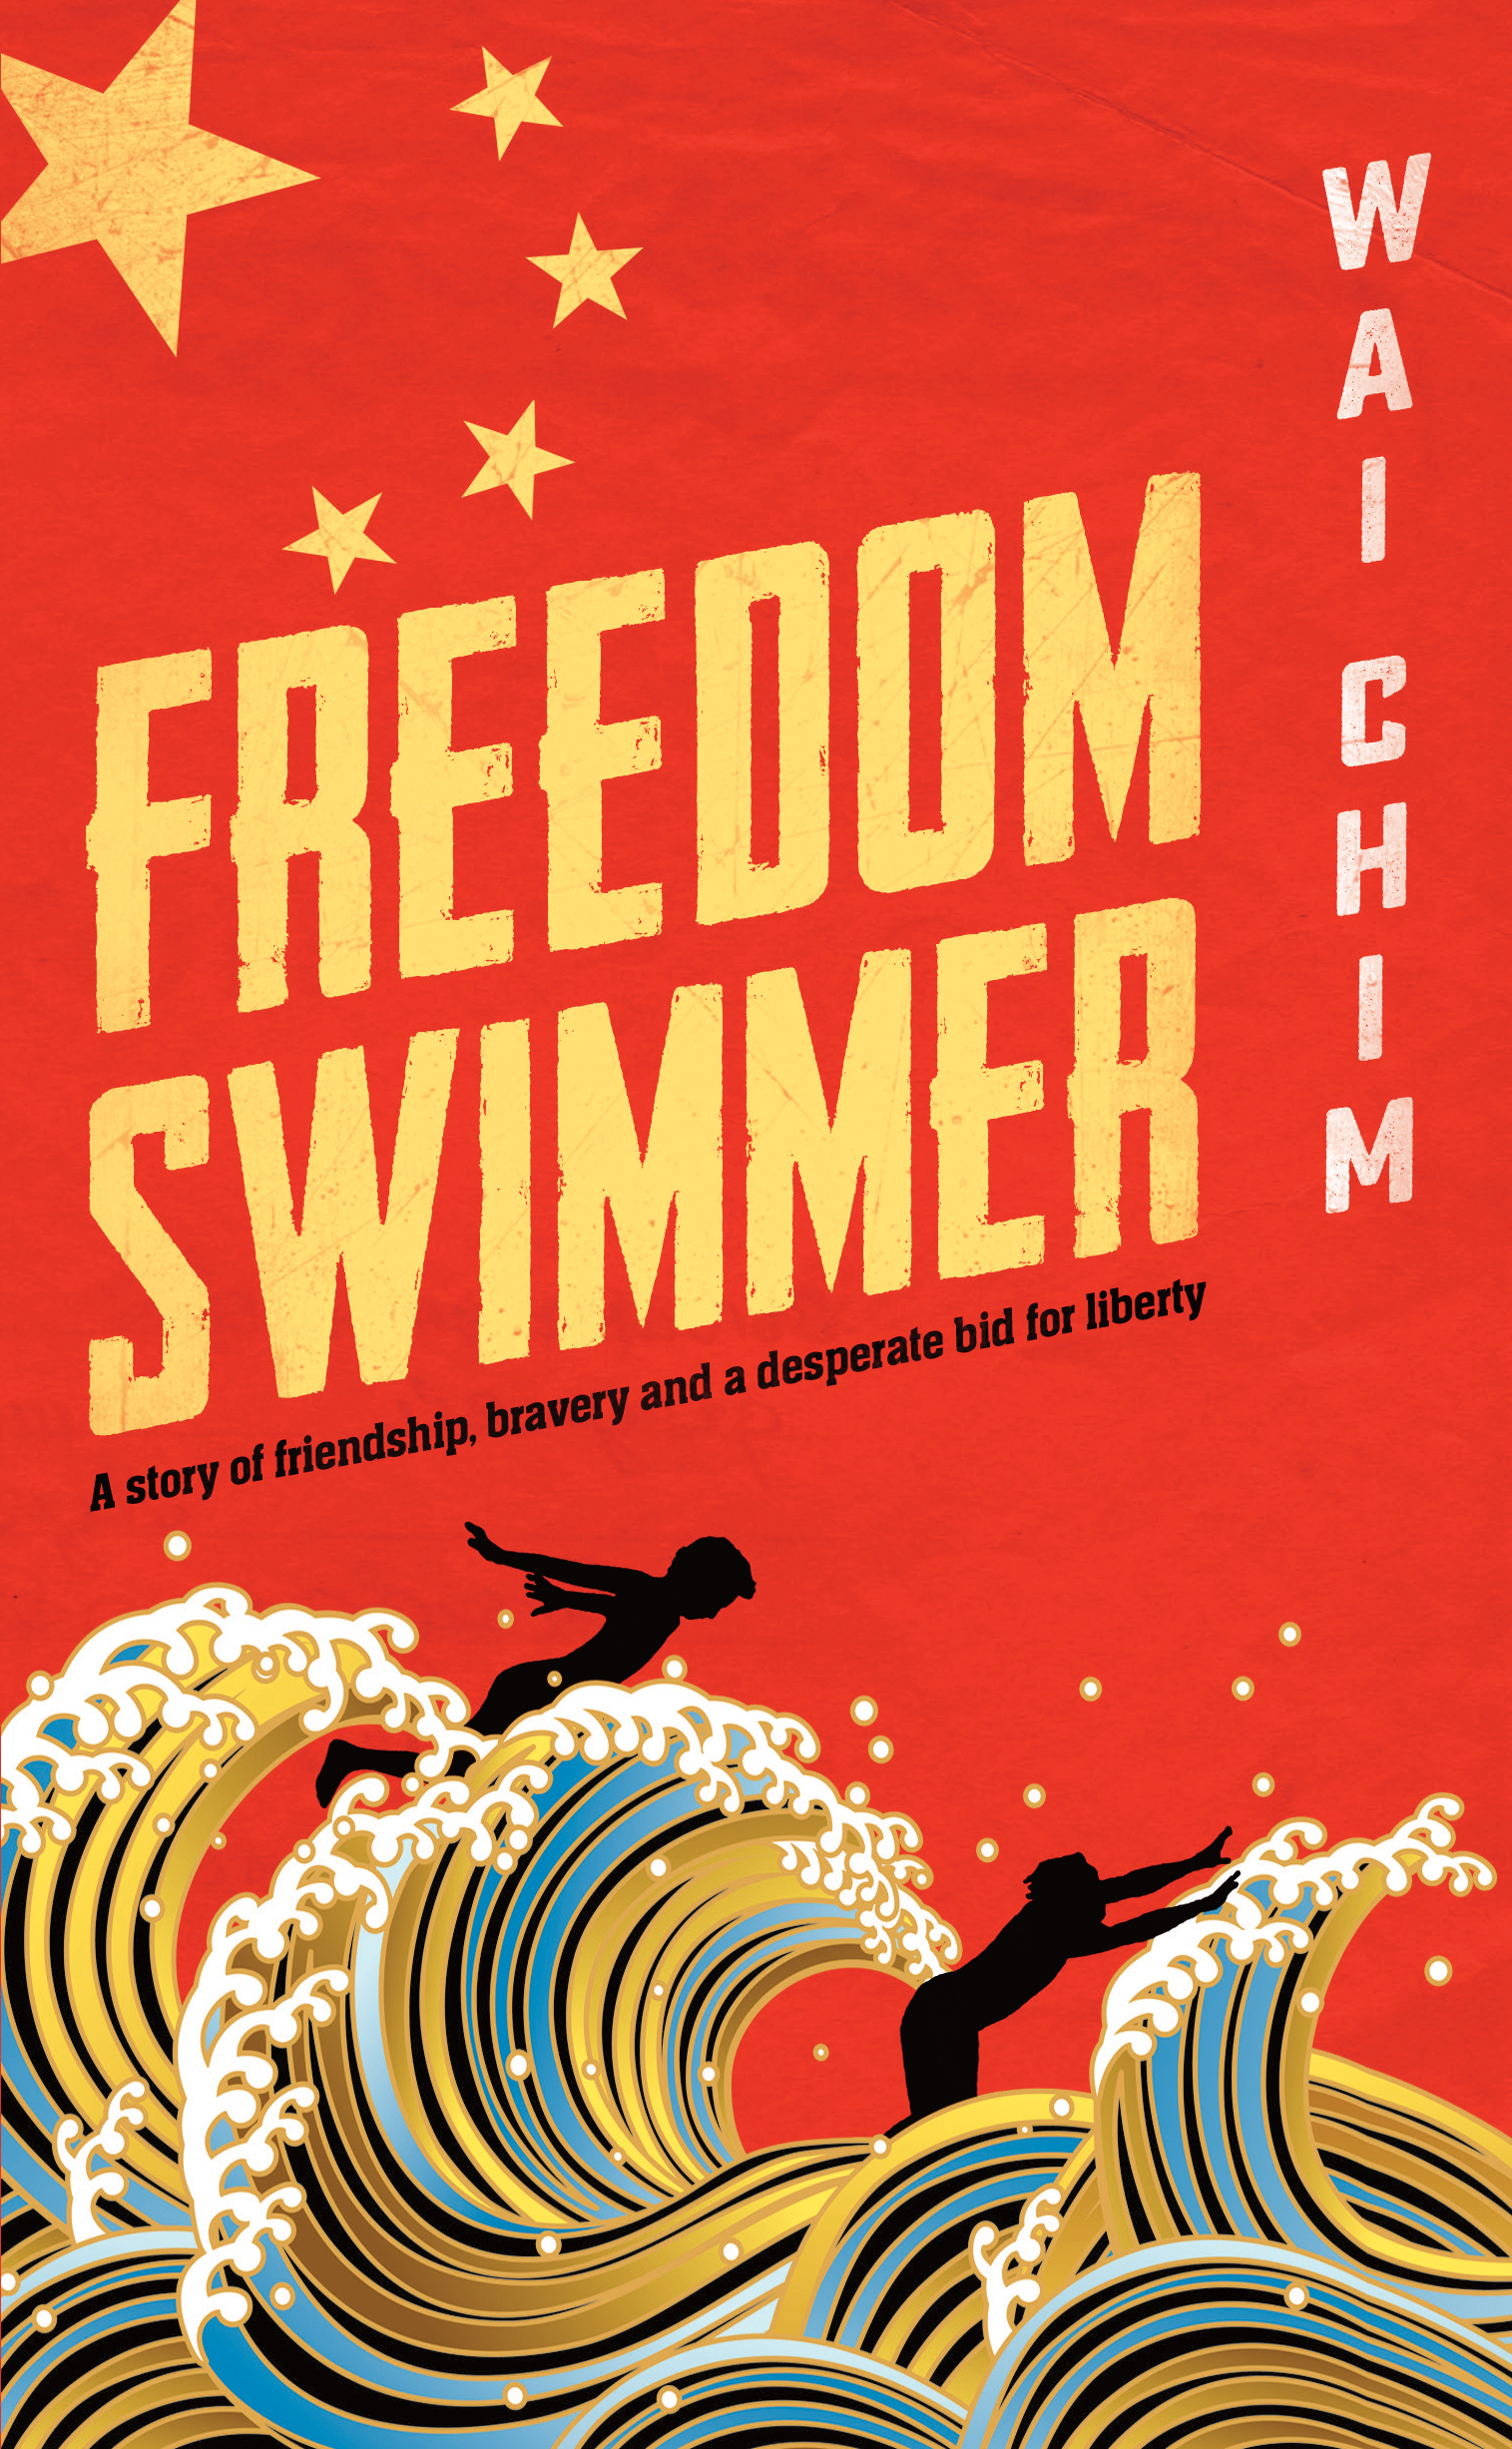 The Freedom Swimmerby Wai Chim